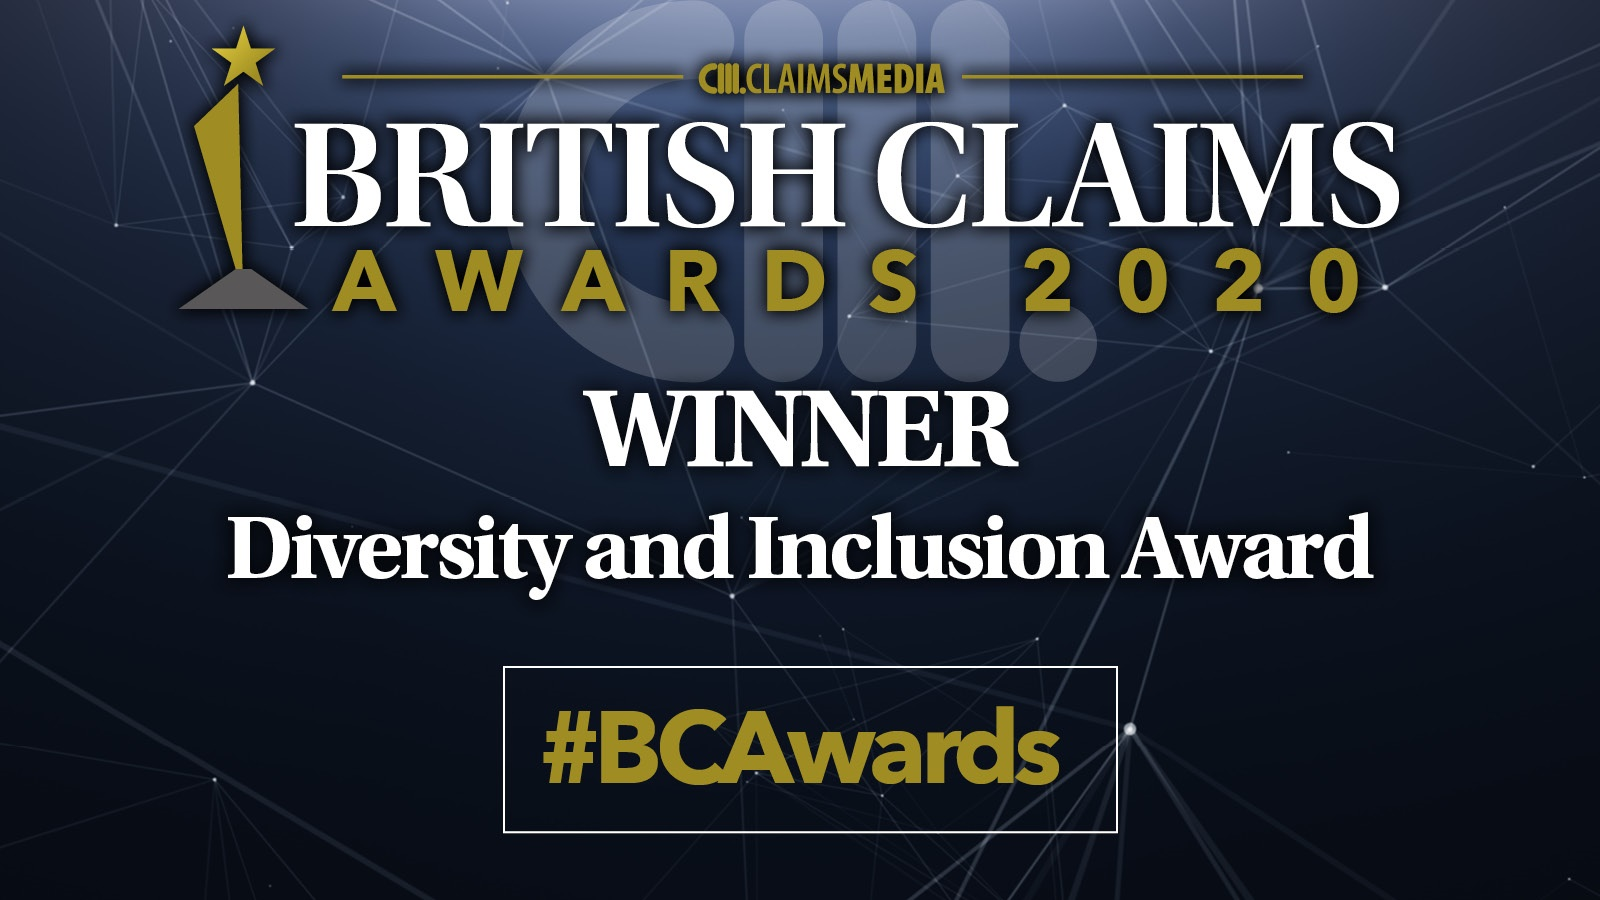 British Claims Awards 2020 Winner Diversity and Inclustion Award